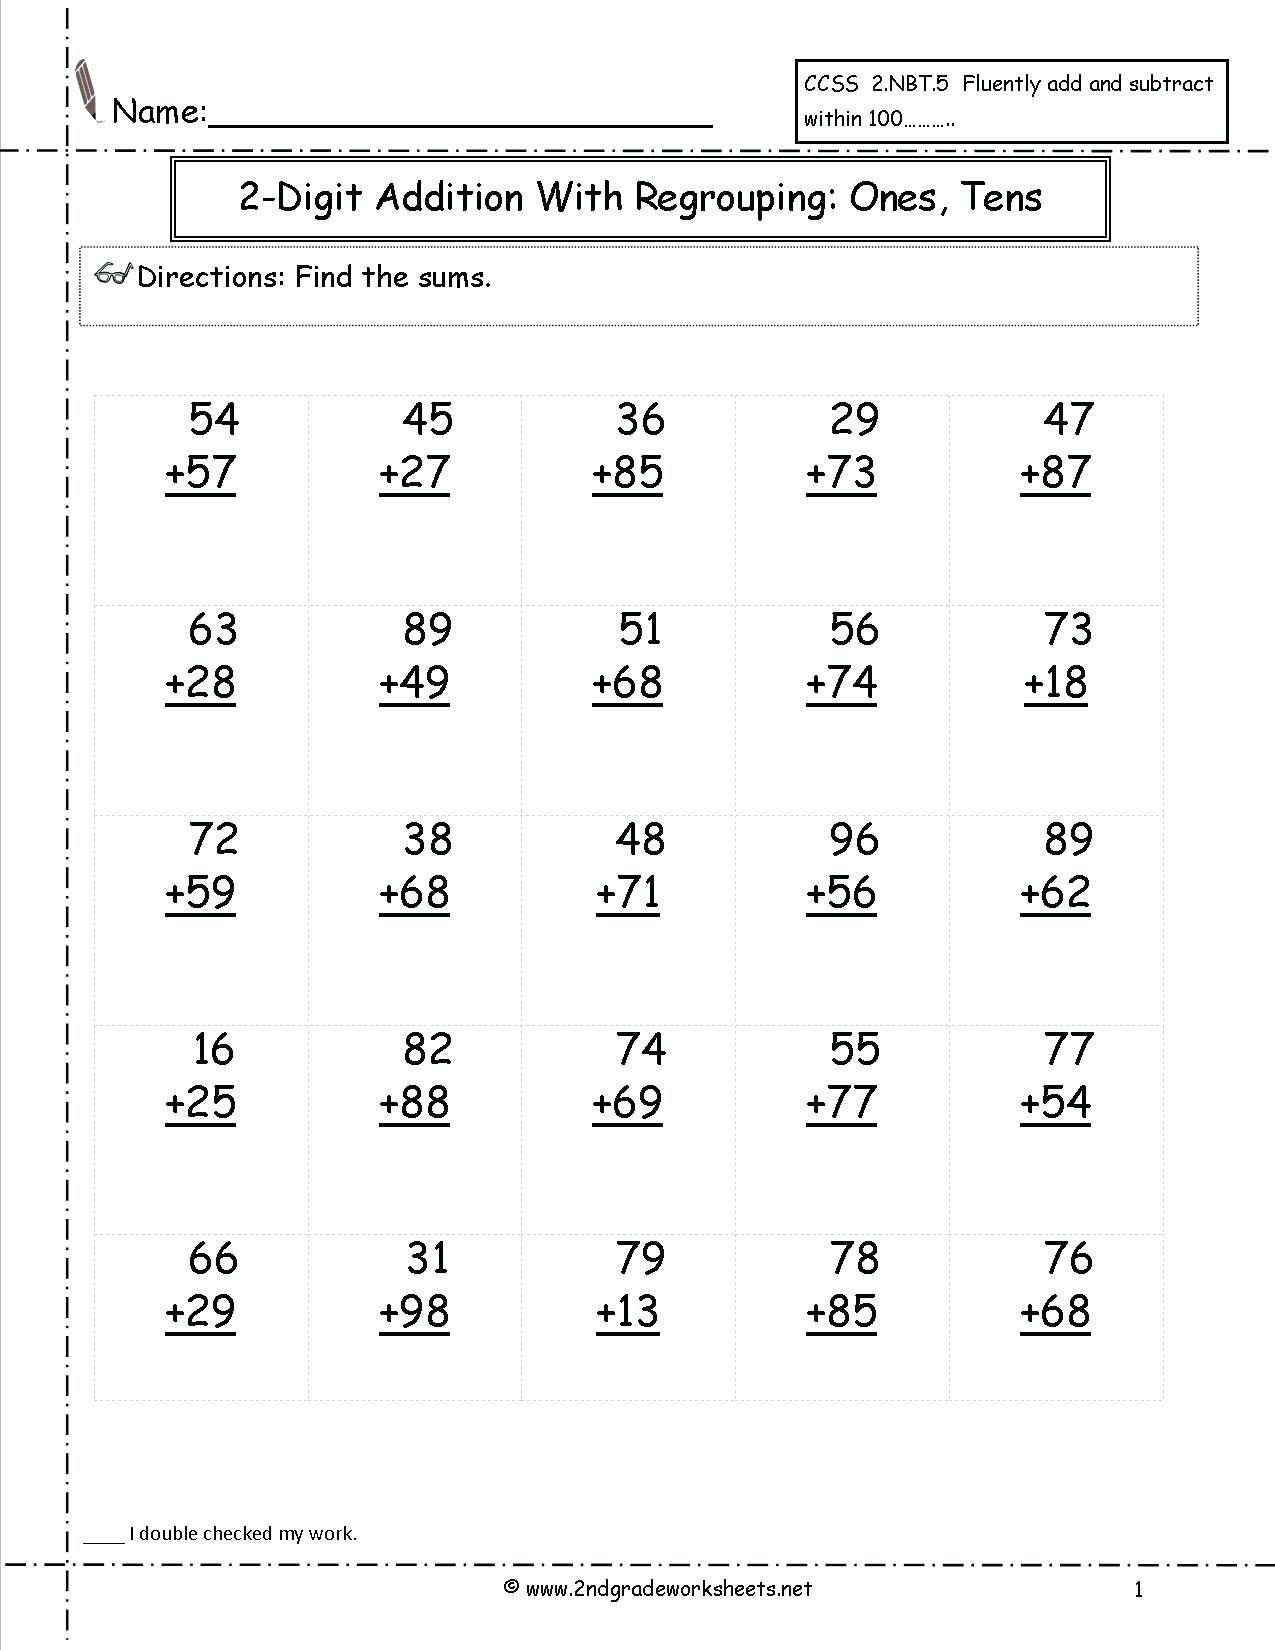 3rd Grade Regrouping Worksheets 4 Free Math Worksheets Third Grade 3 Addition Add 2 Digit